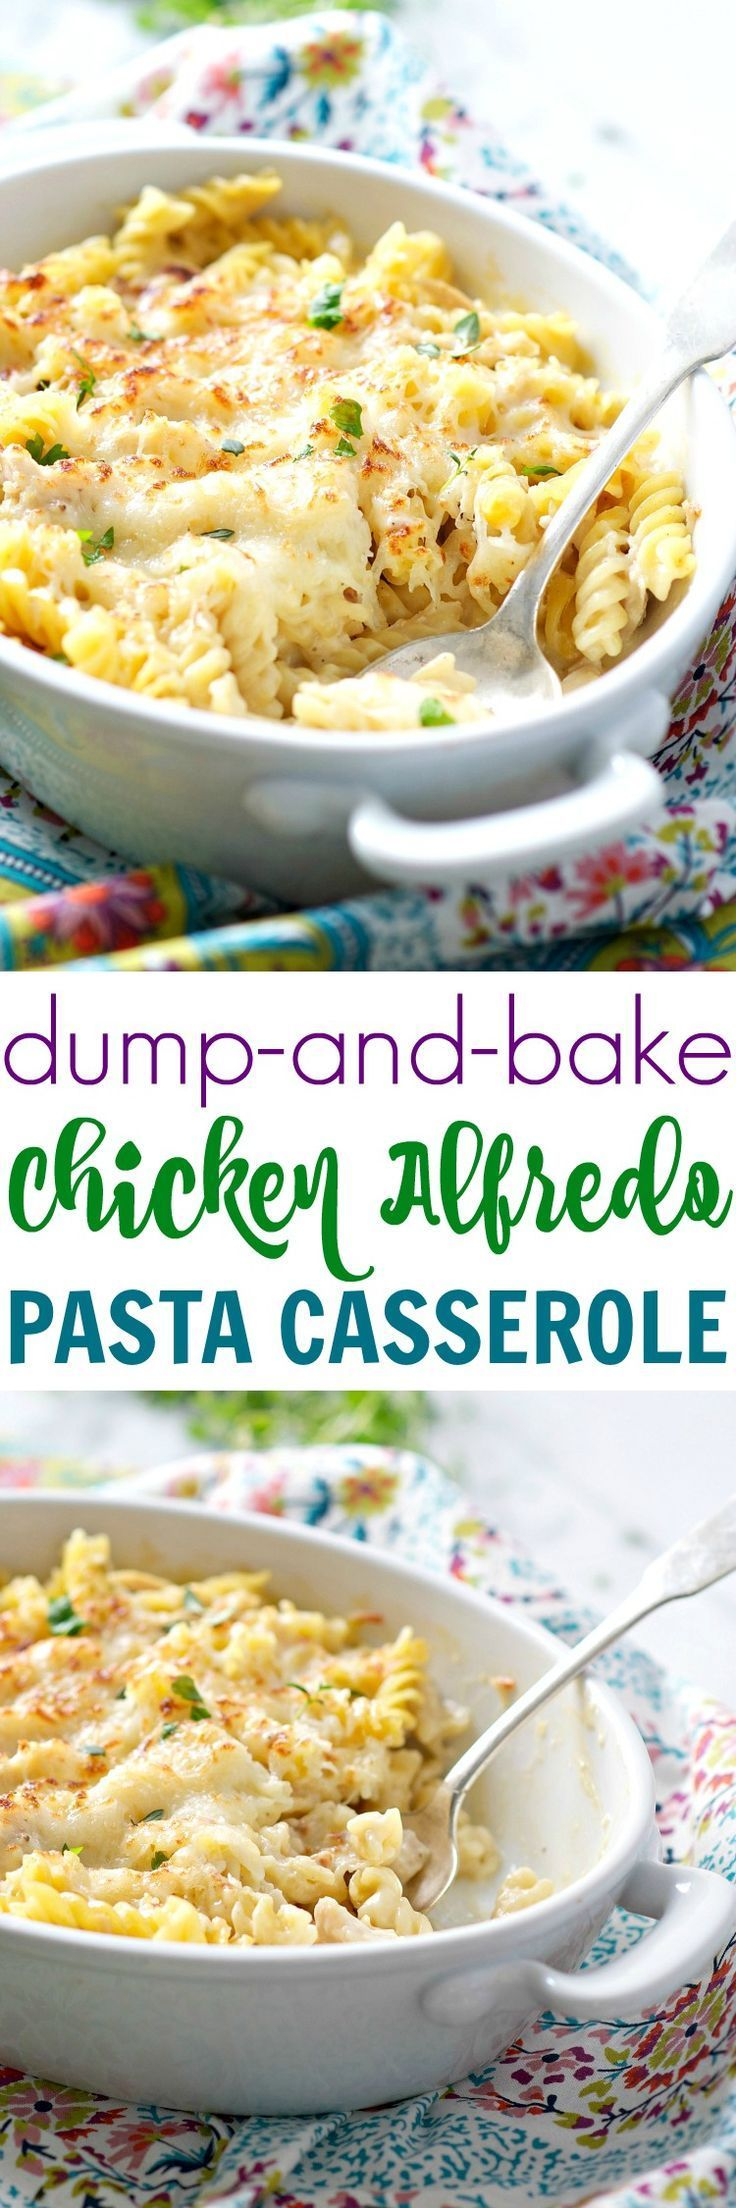 Photo of Dump and Bake Chicken Alfredo Pasta Casserole – The Seasoned Mom